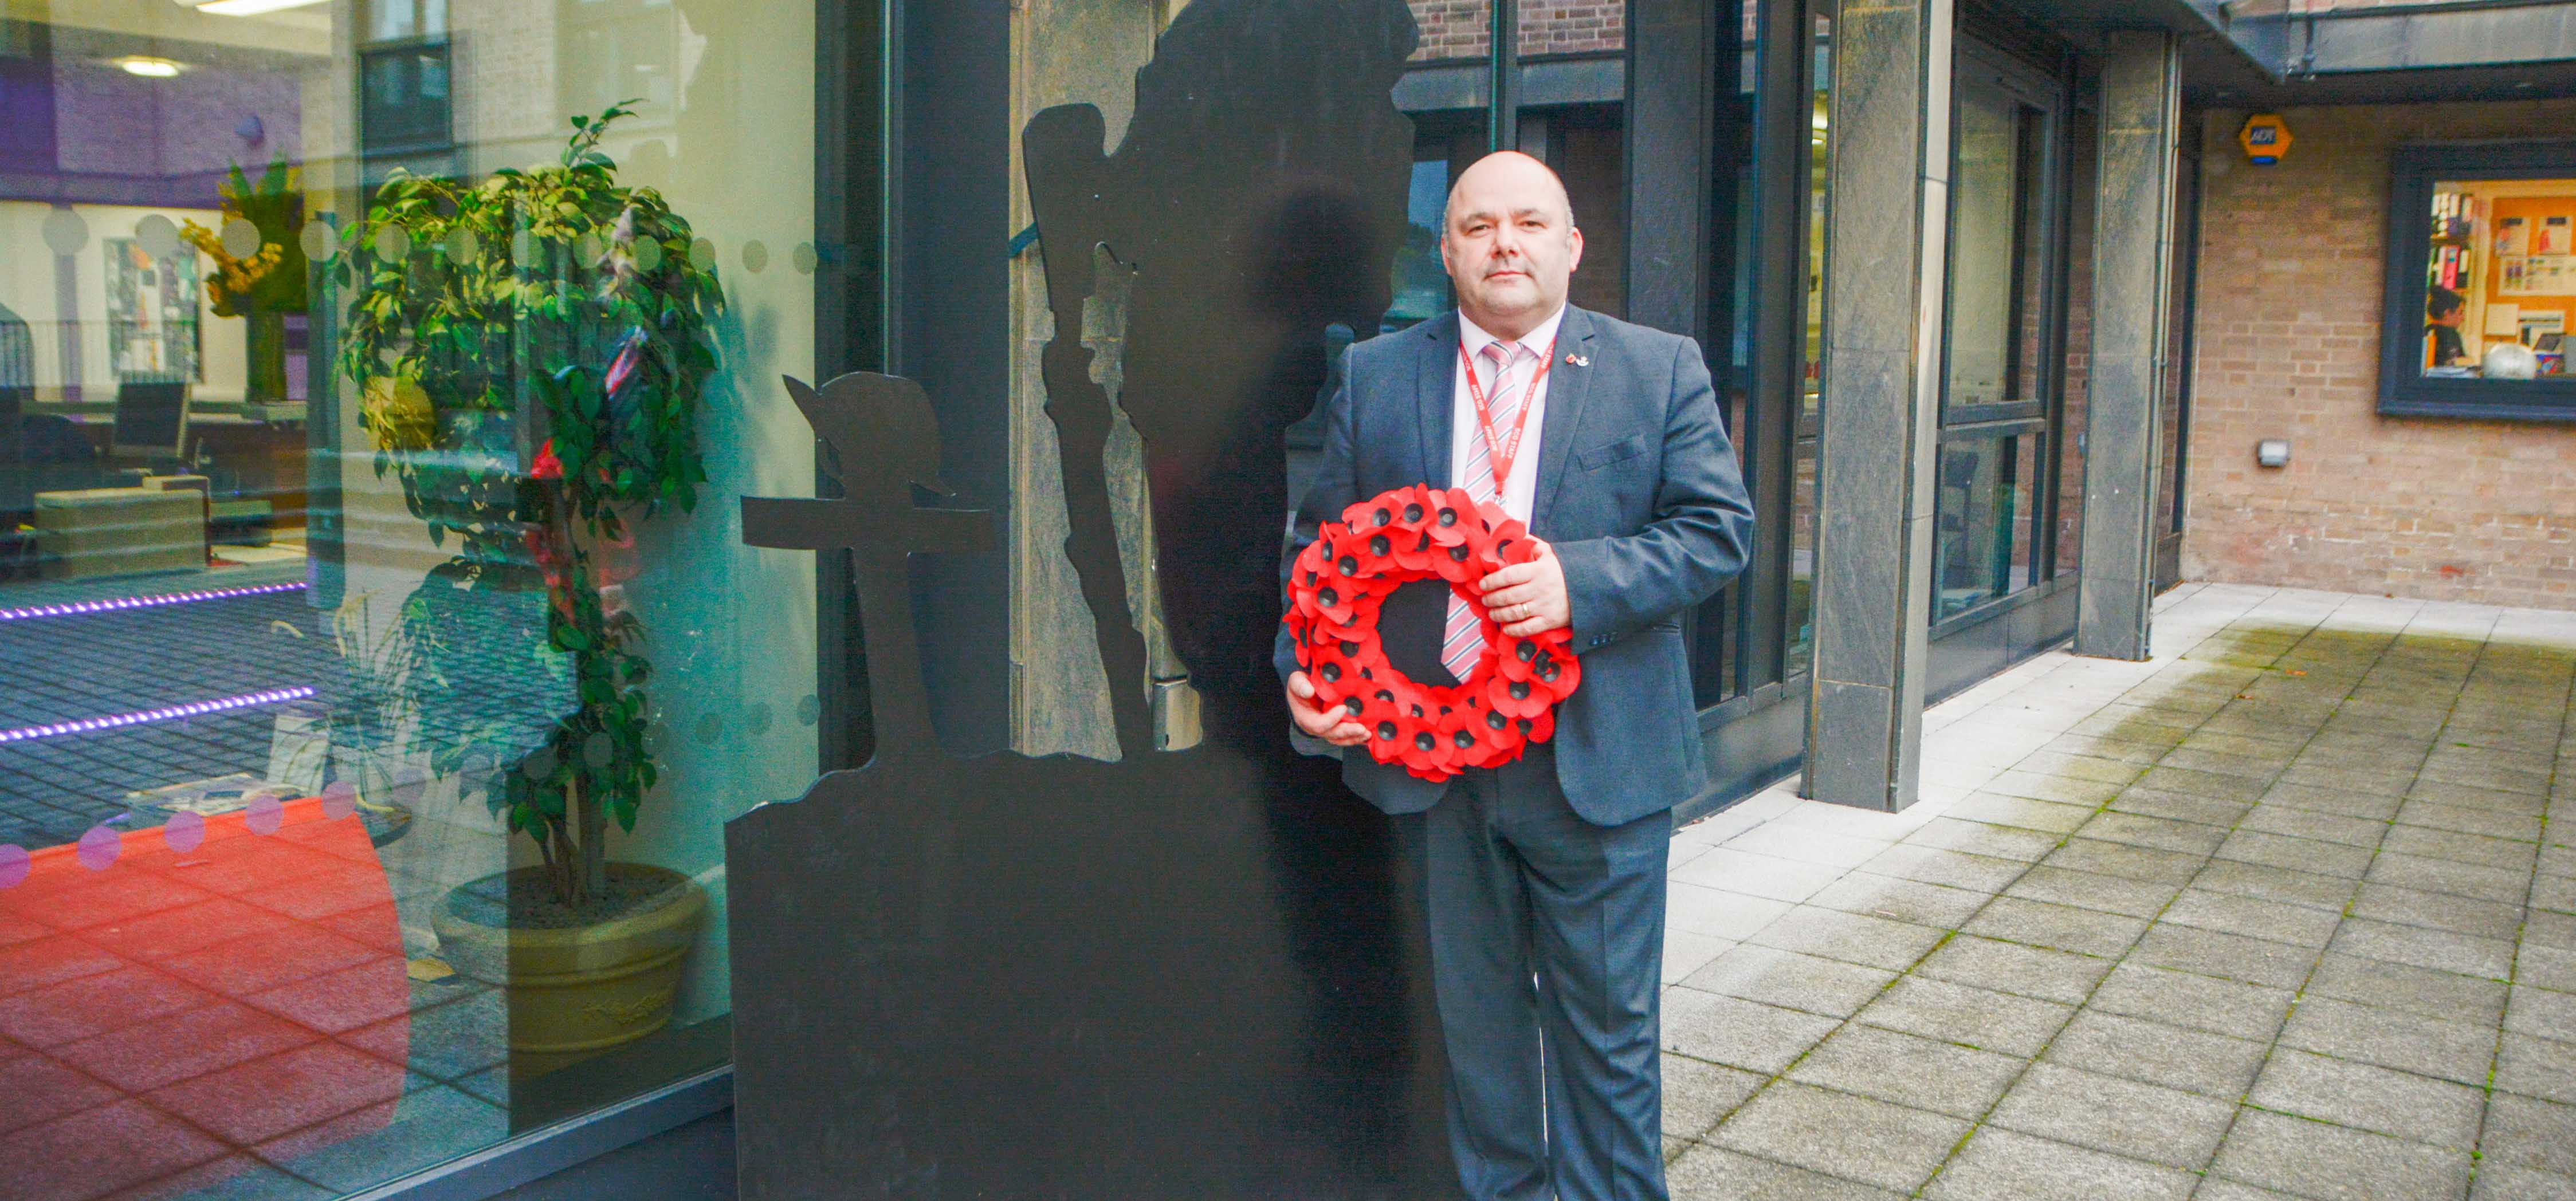 College Commercial Manager holding a poppy wreath and standing next to wooden silhouette of a soldier.